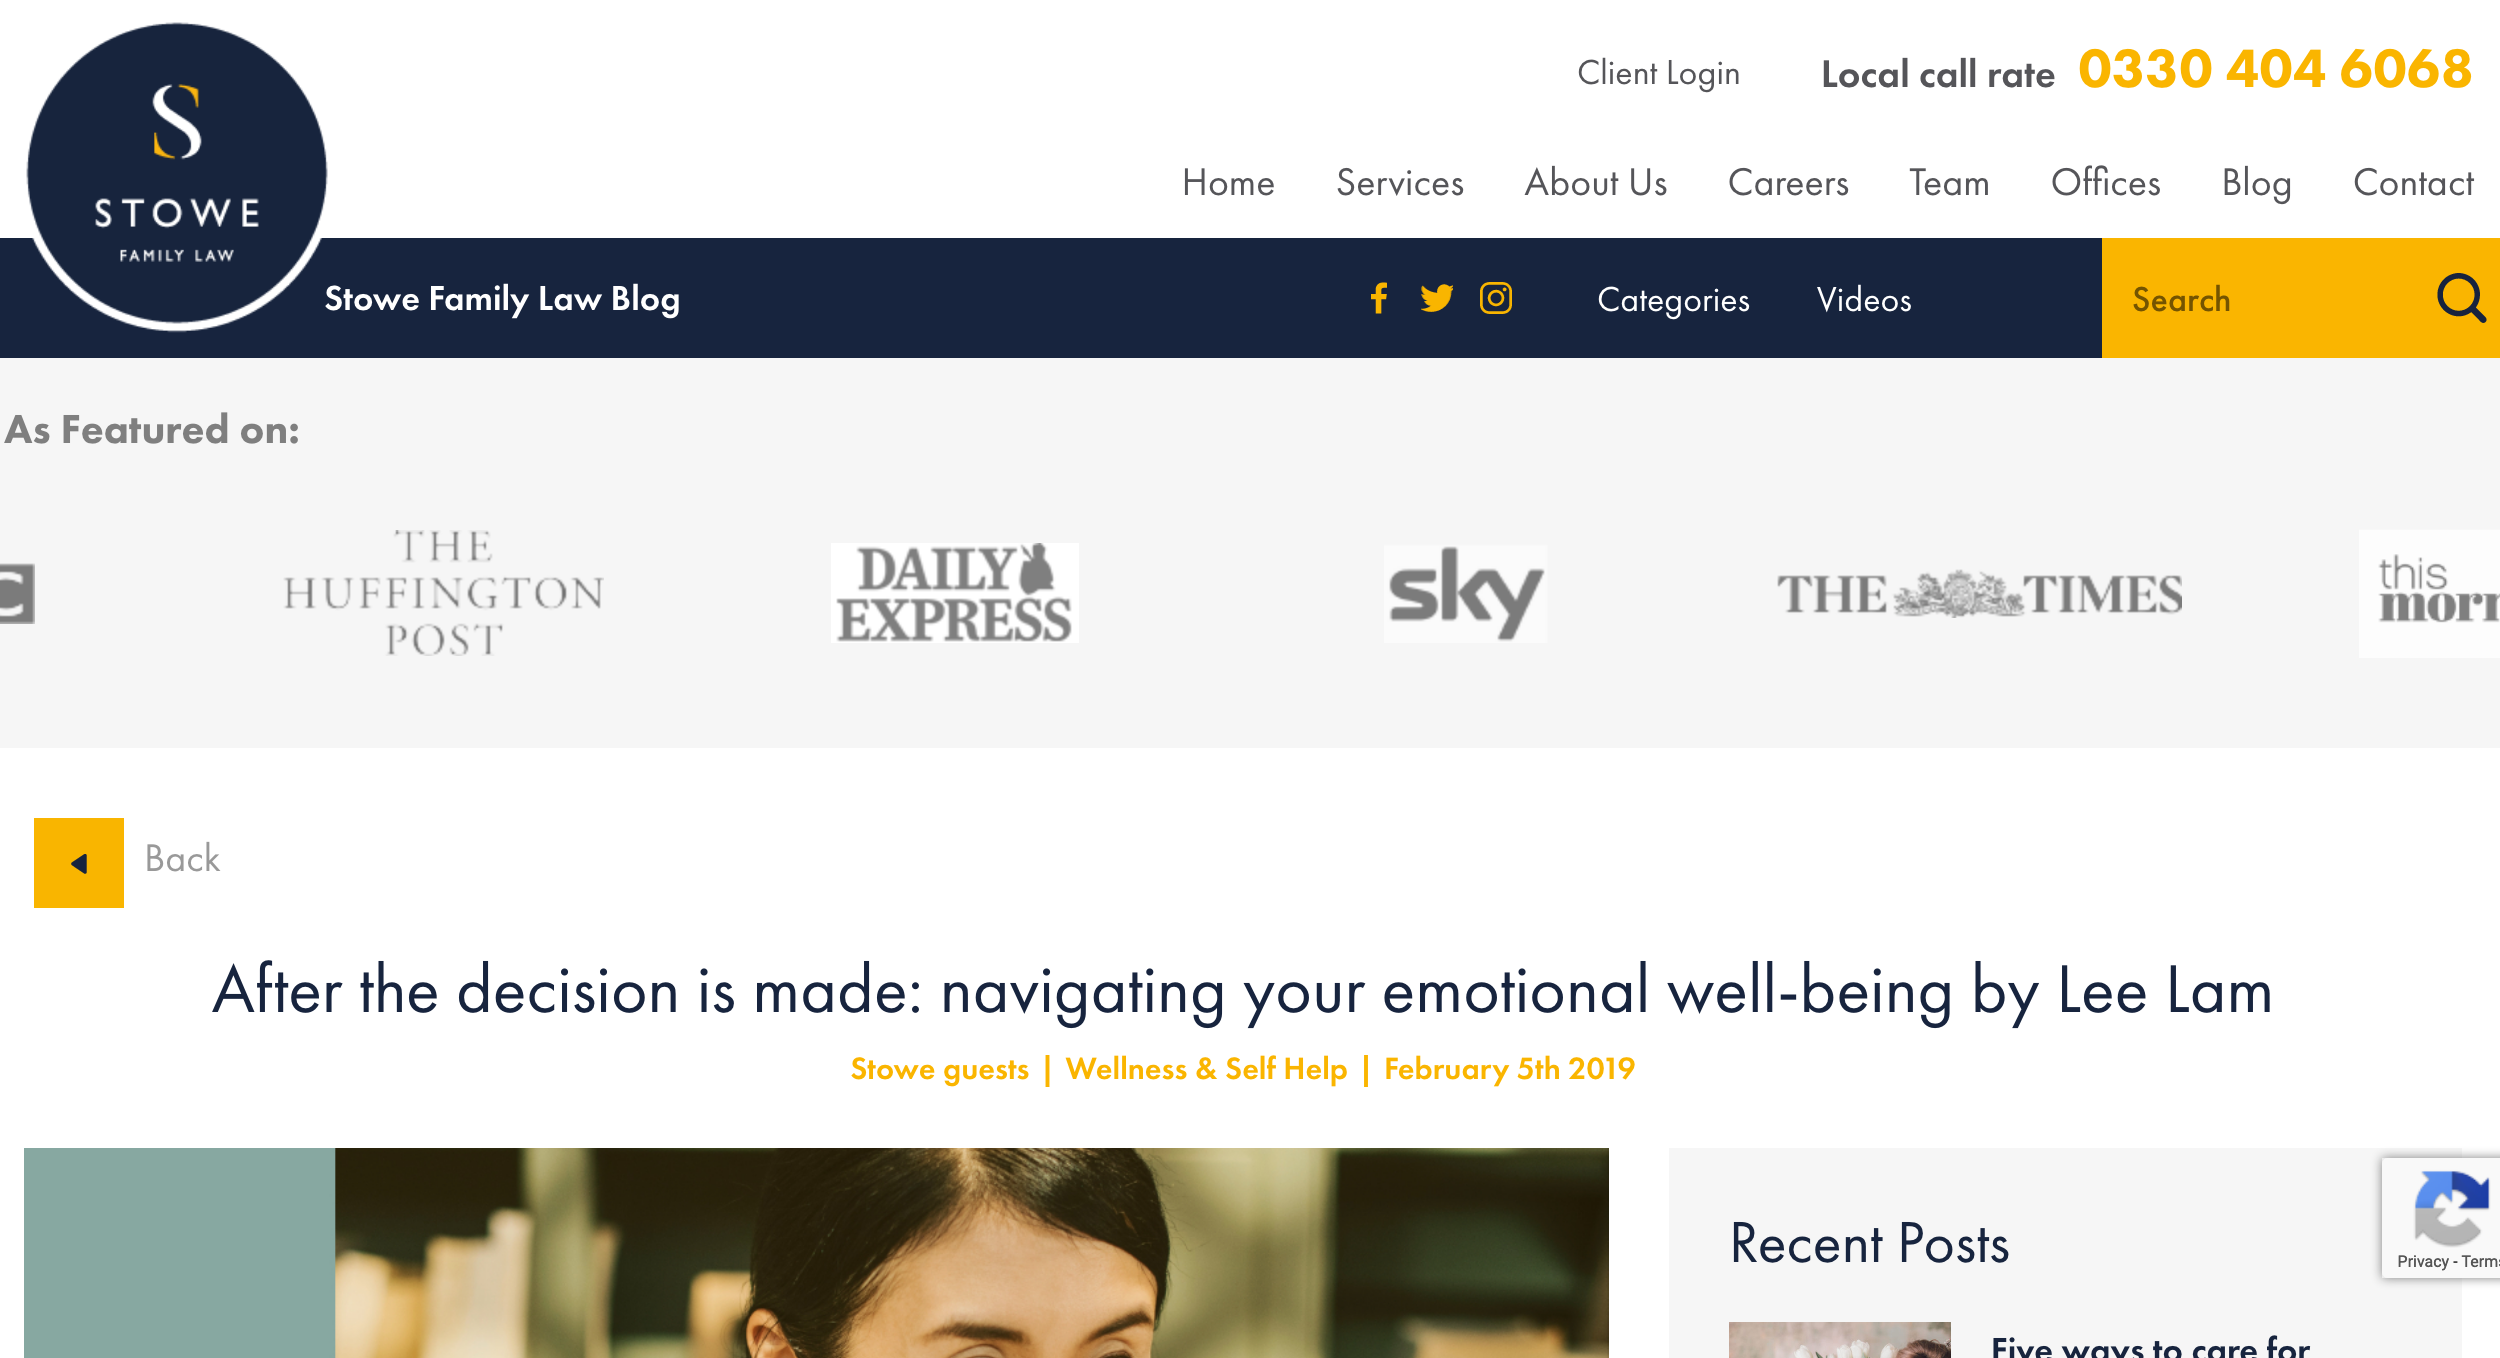 Screenshot_2019-07-16 After the decision is made navigating your emotional well-being by Lee Lam - Stowe Family Law.png